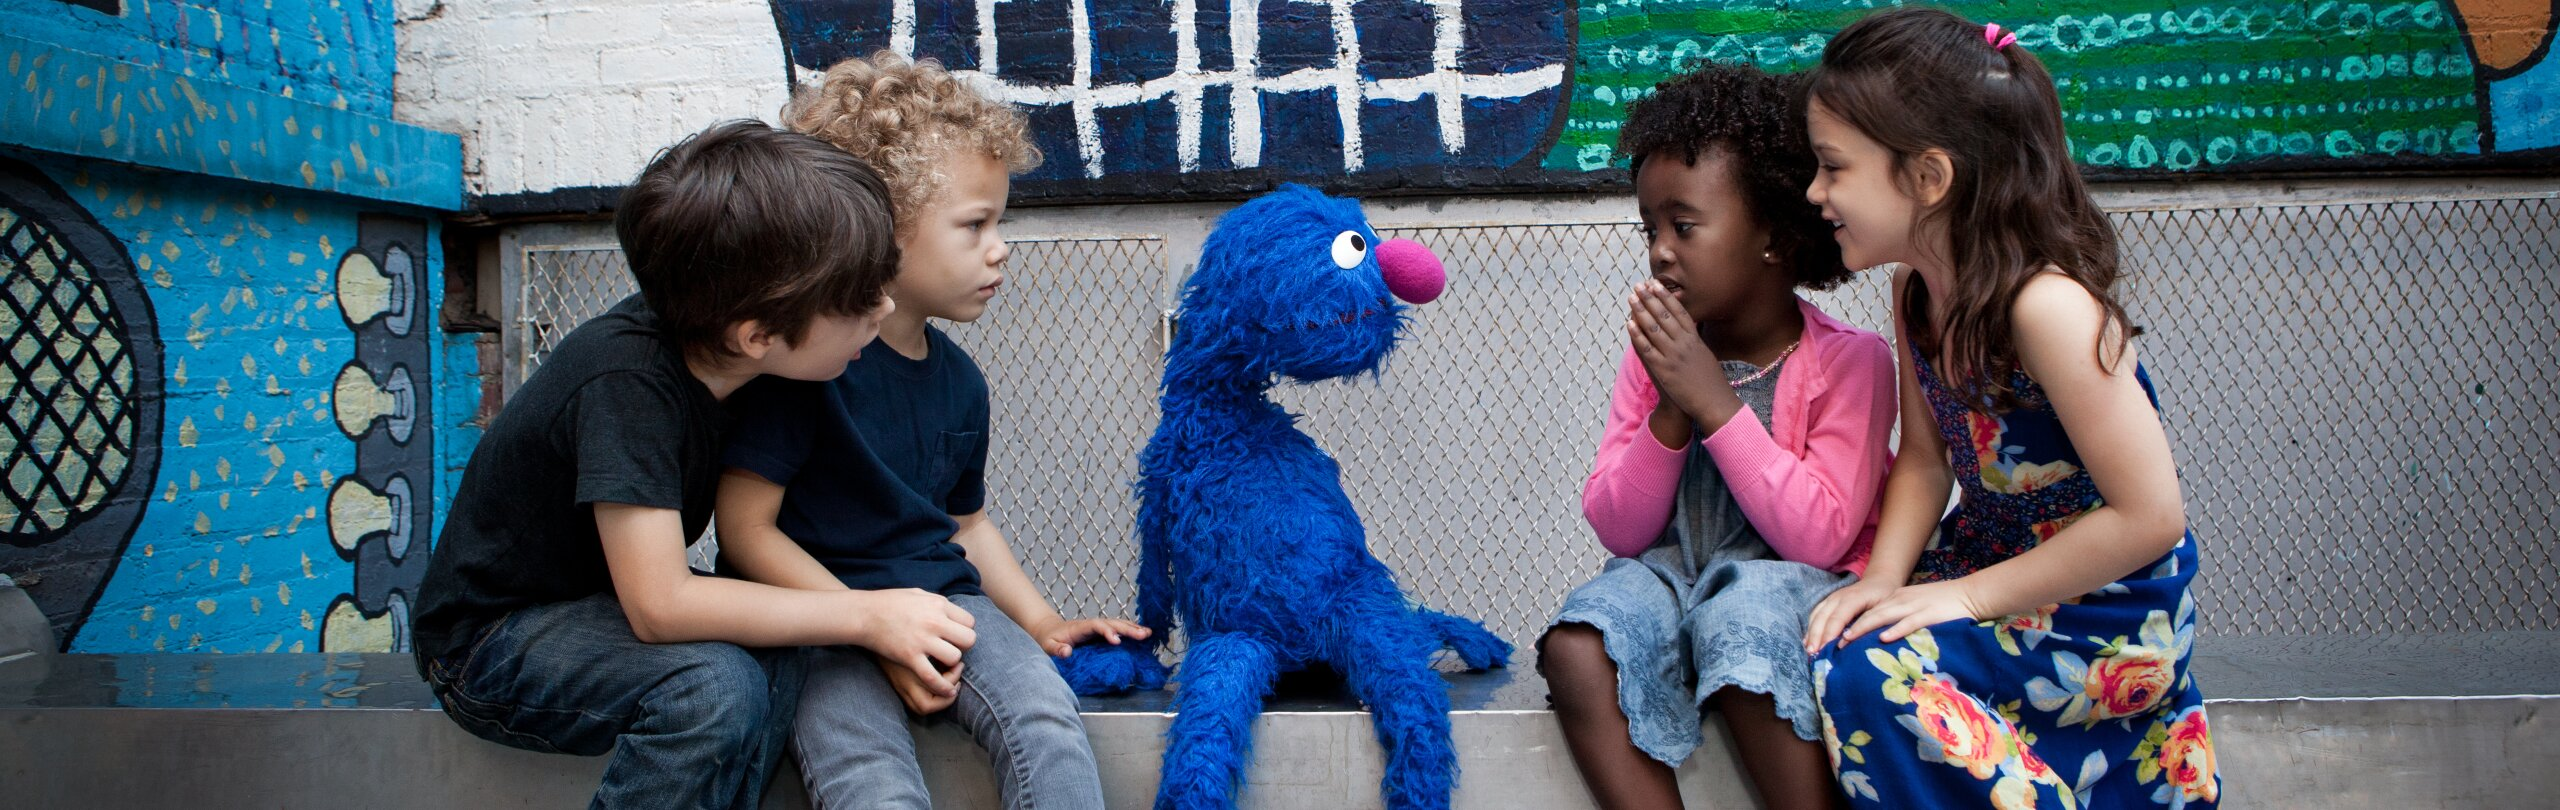 Grover sits on a stoop with a group of four children looking at him